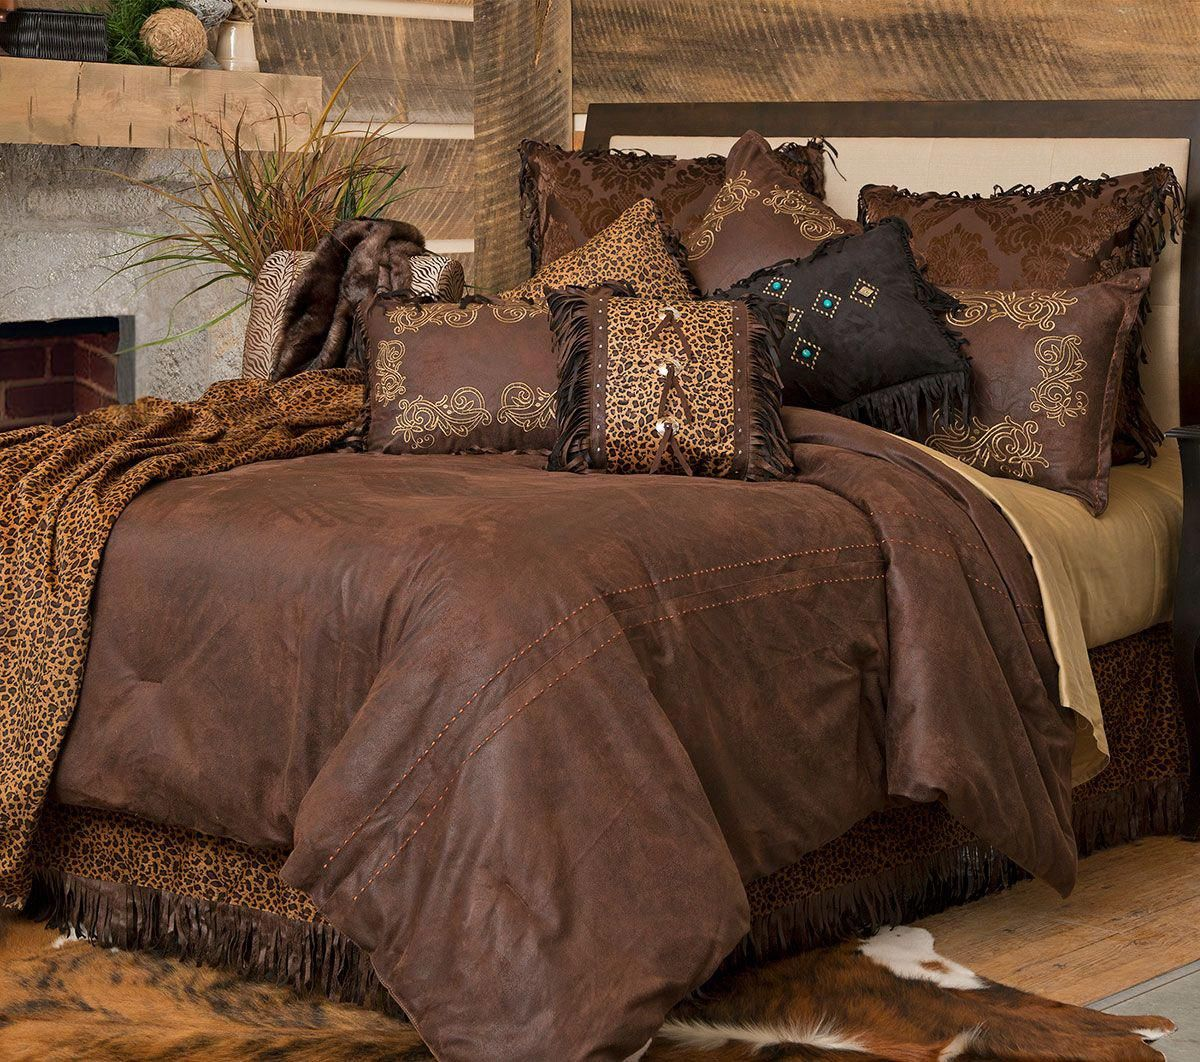 Old West Bed Set Queen Luxury Bedding Luxury Bedding Sets Bedding Sets